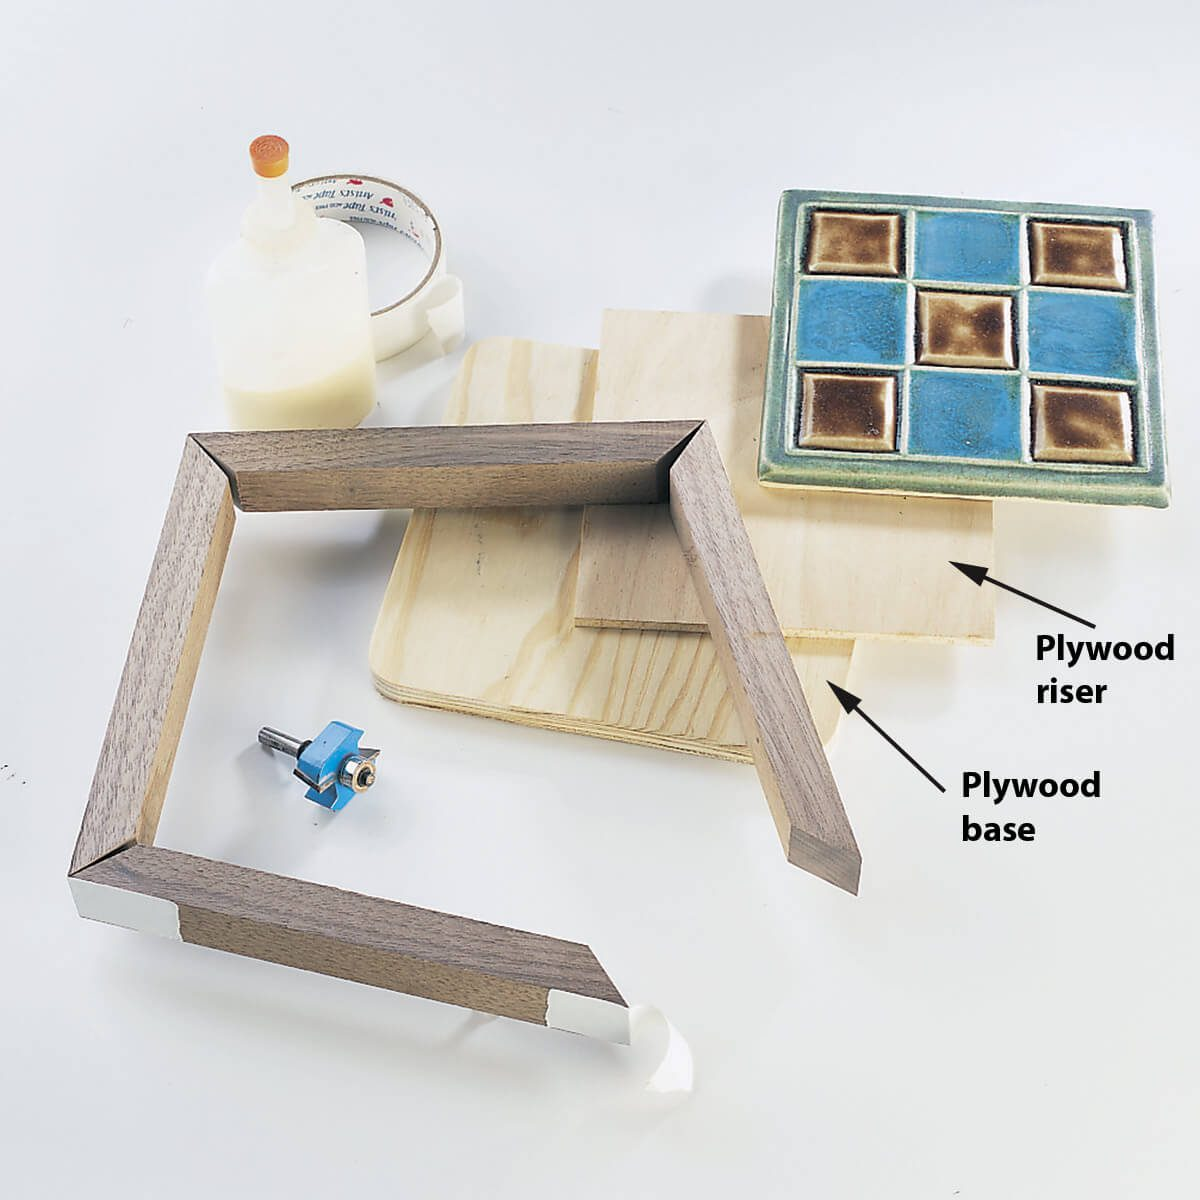 gluing tile in trivet